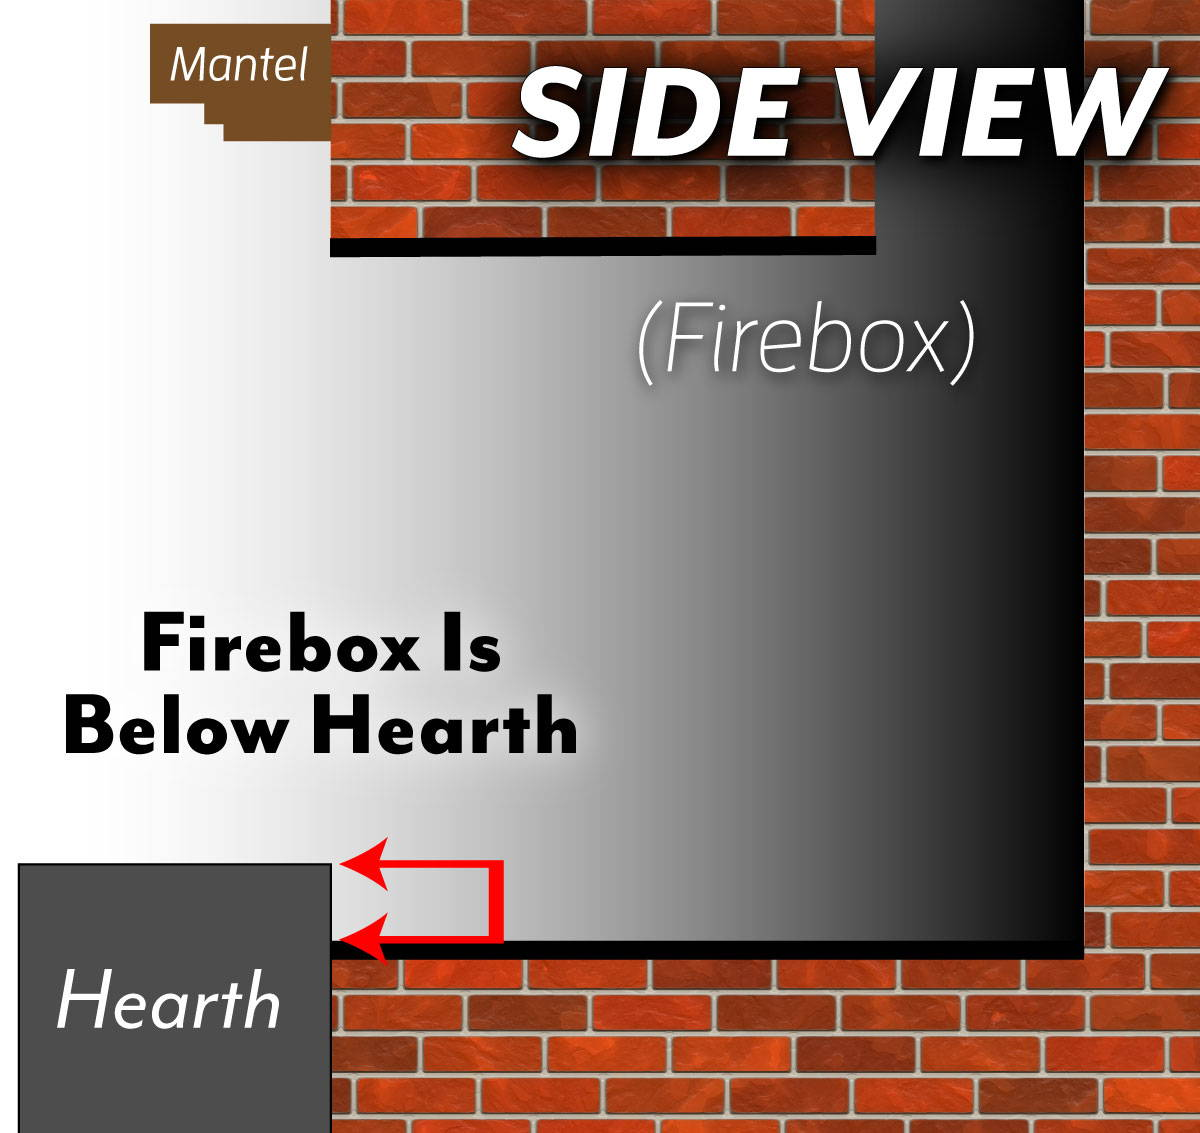 Fire Bed Below Hearth -  Side View